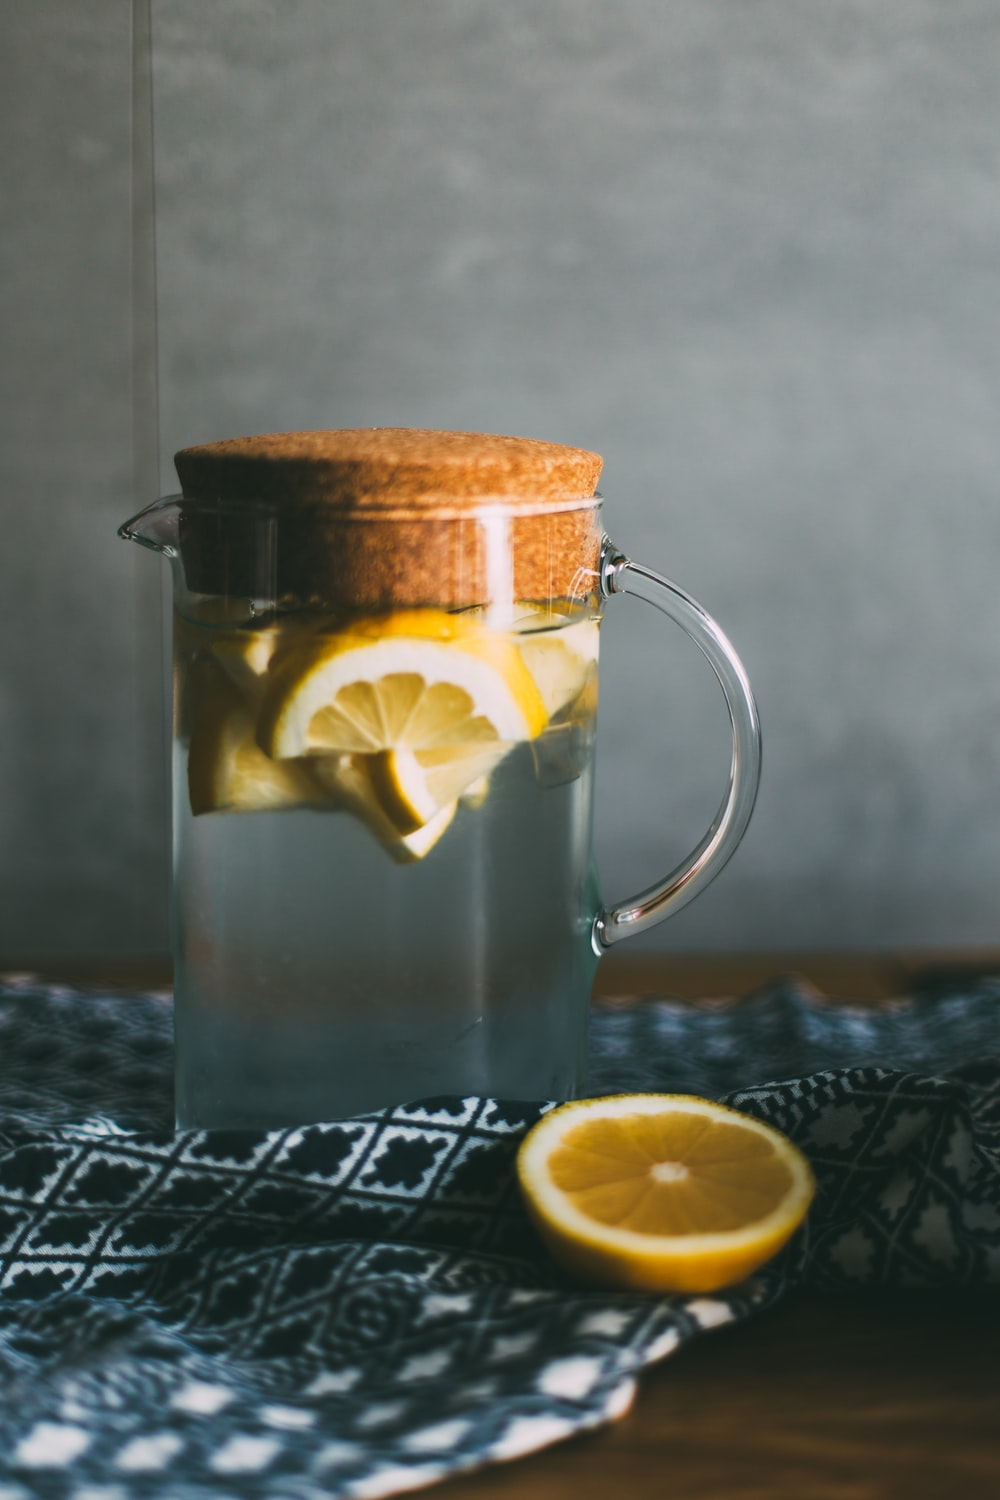 clear glass pitcher filled with sliced lemons on black and white table runner